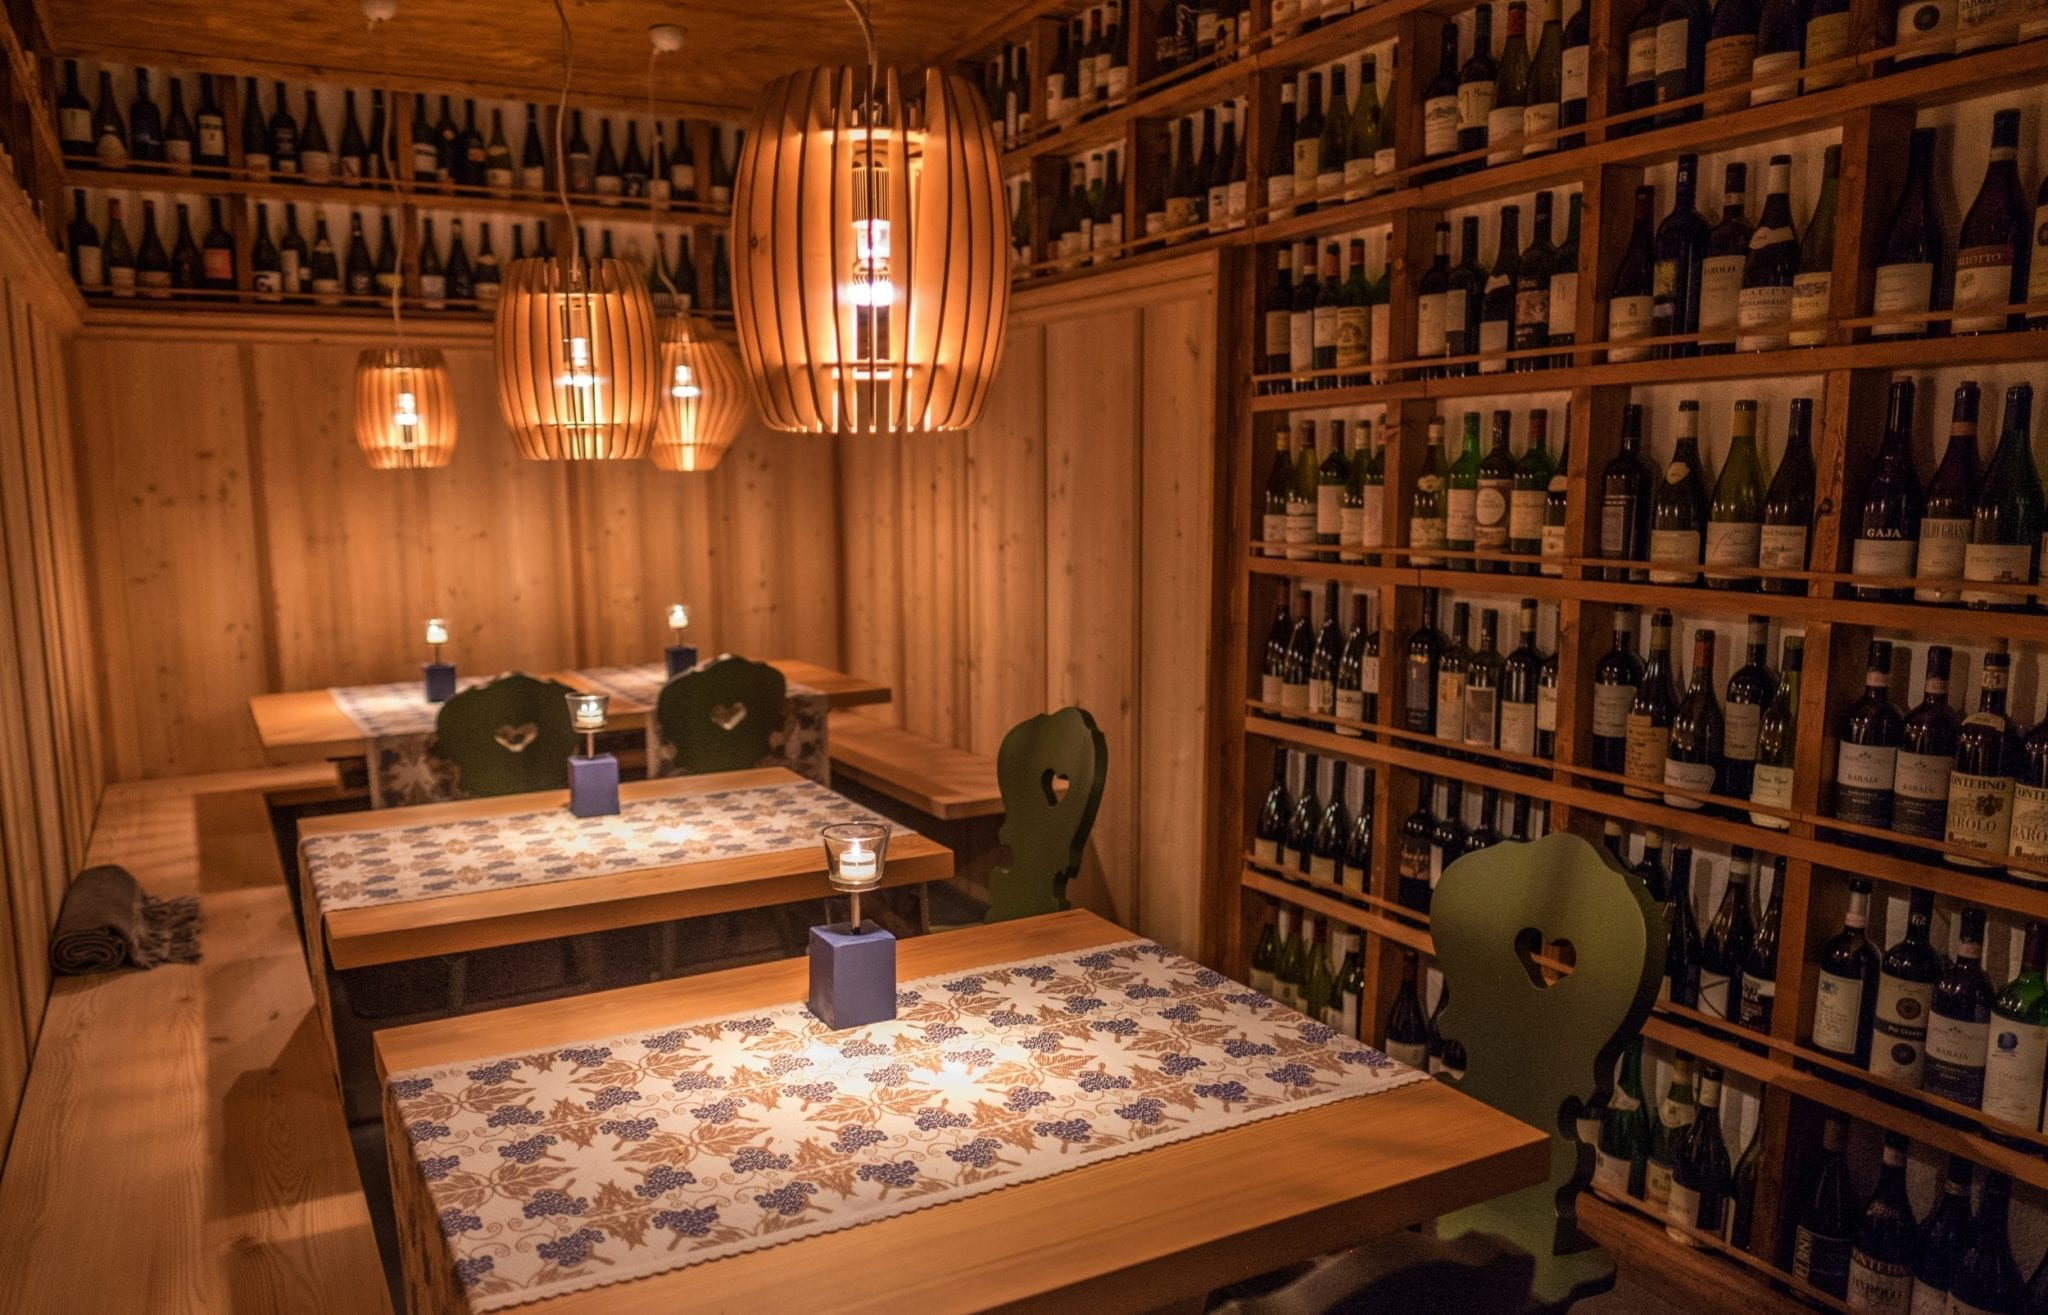 A wine cellar with bottles lining the wood-paneled walls and wooden seats covered with patterned tablecloths.